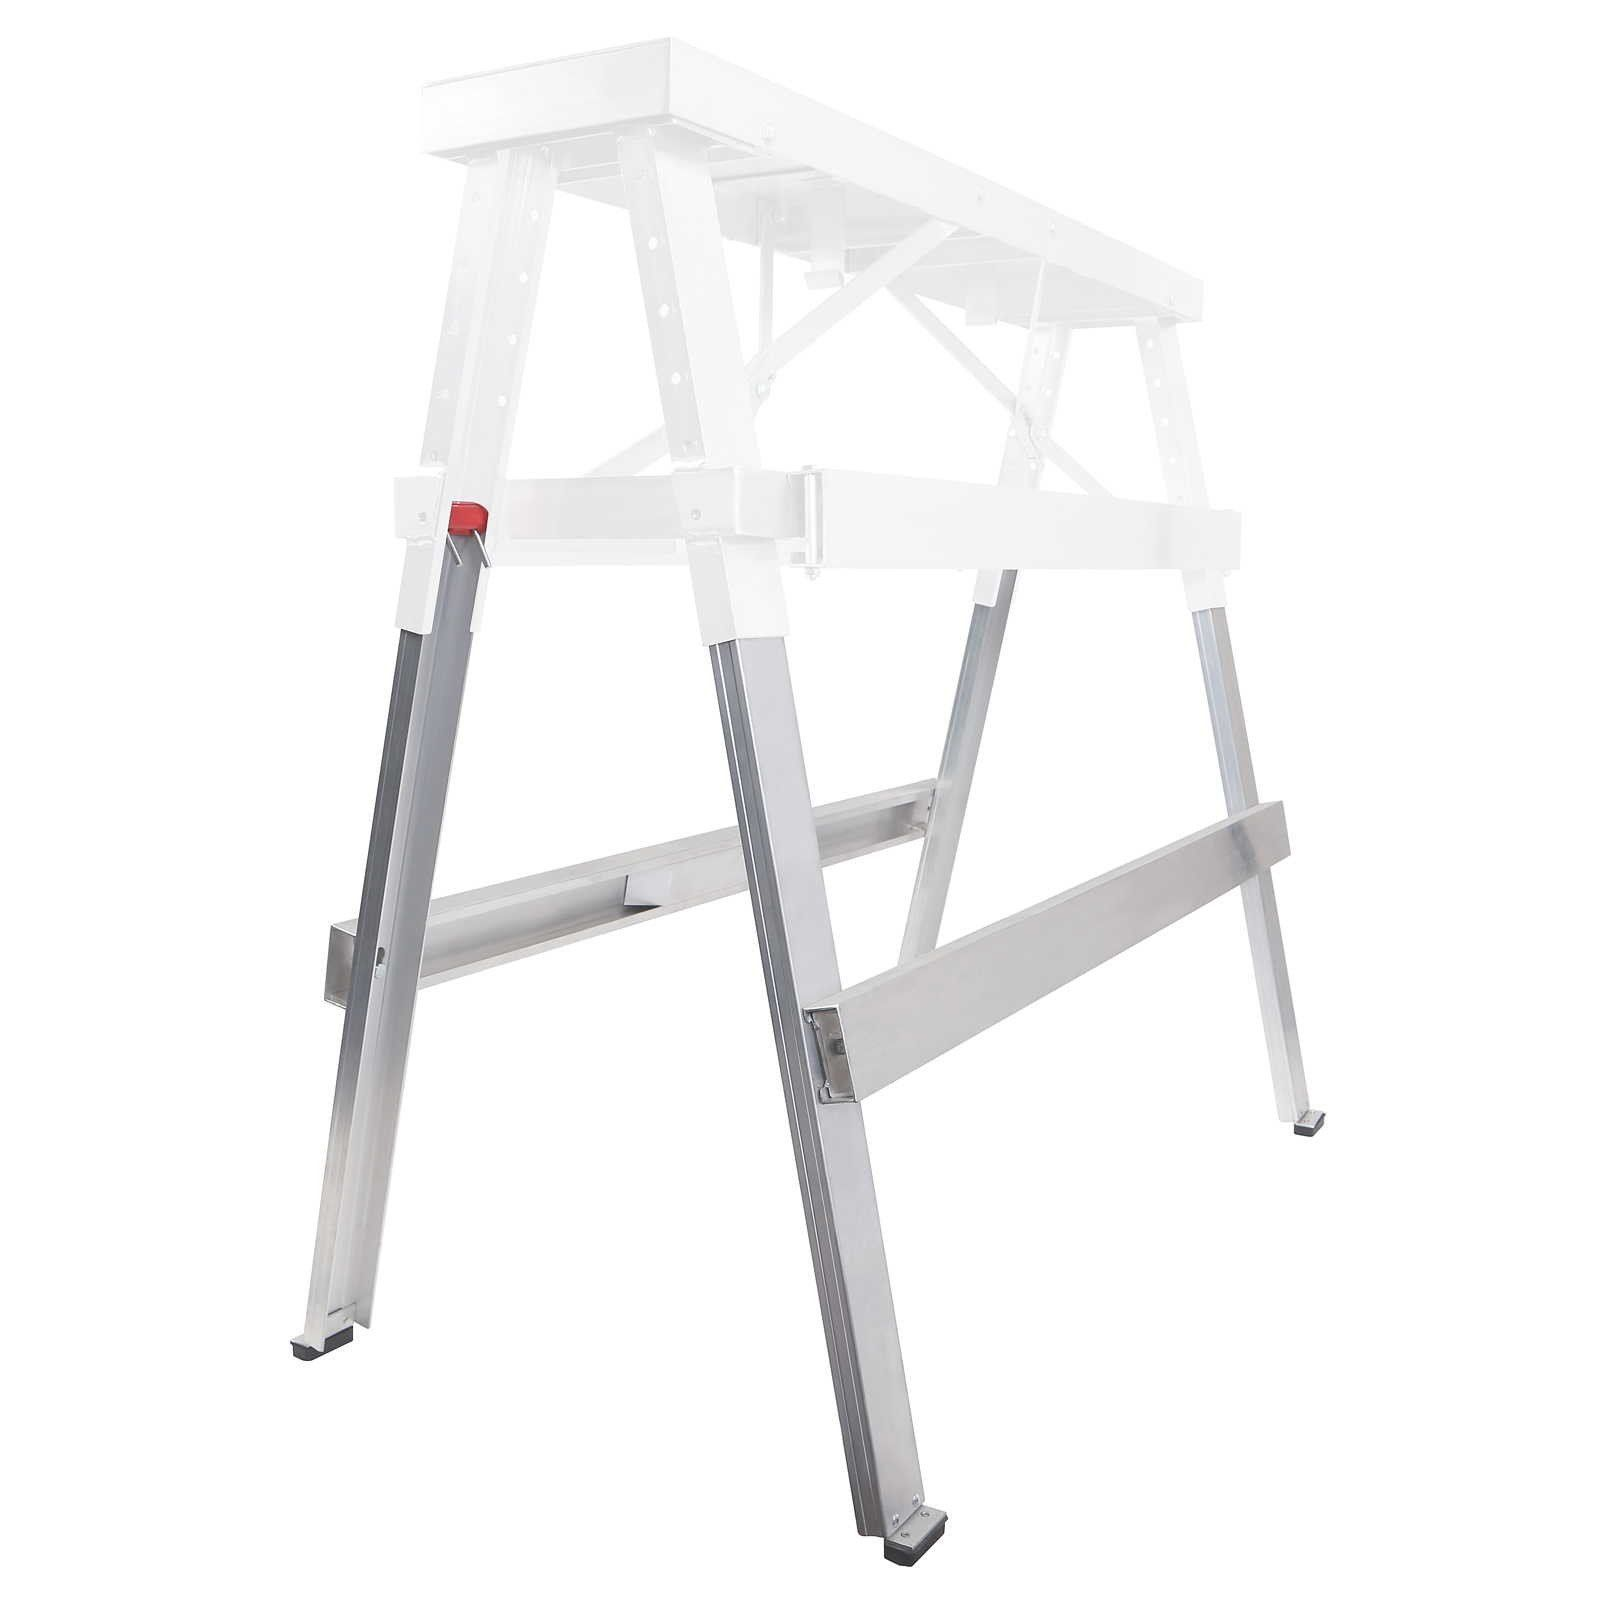 Adjustable Extension Legs For Drywall Bench Sawhorse Step Ladder